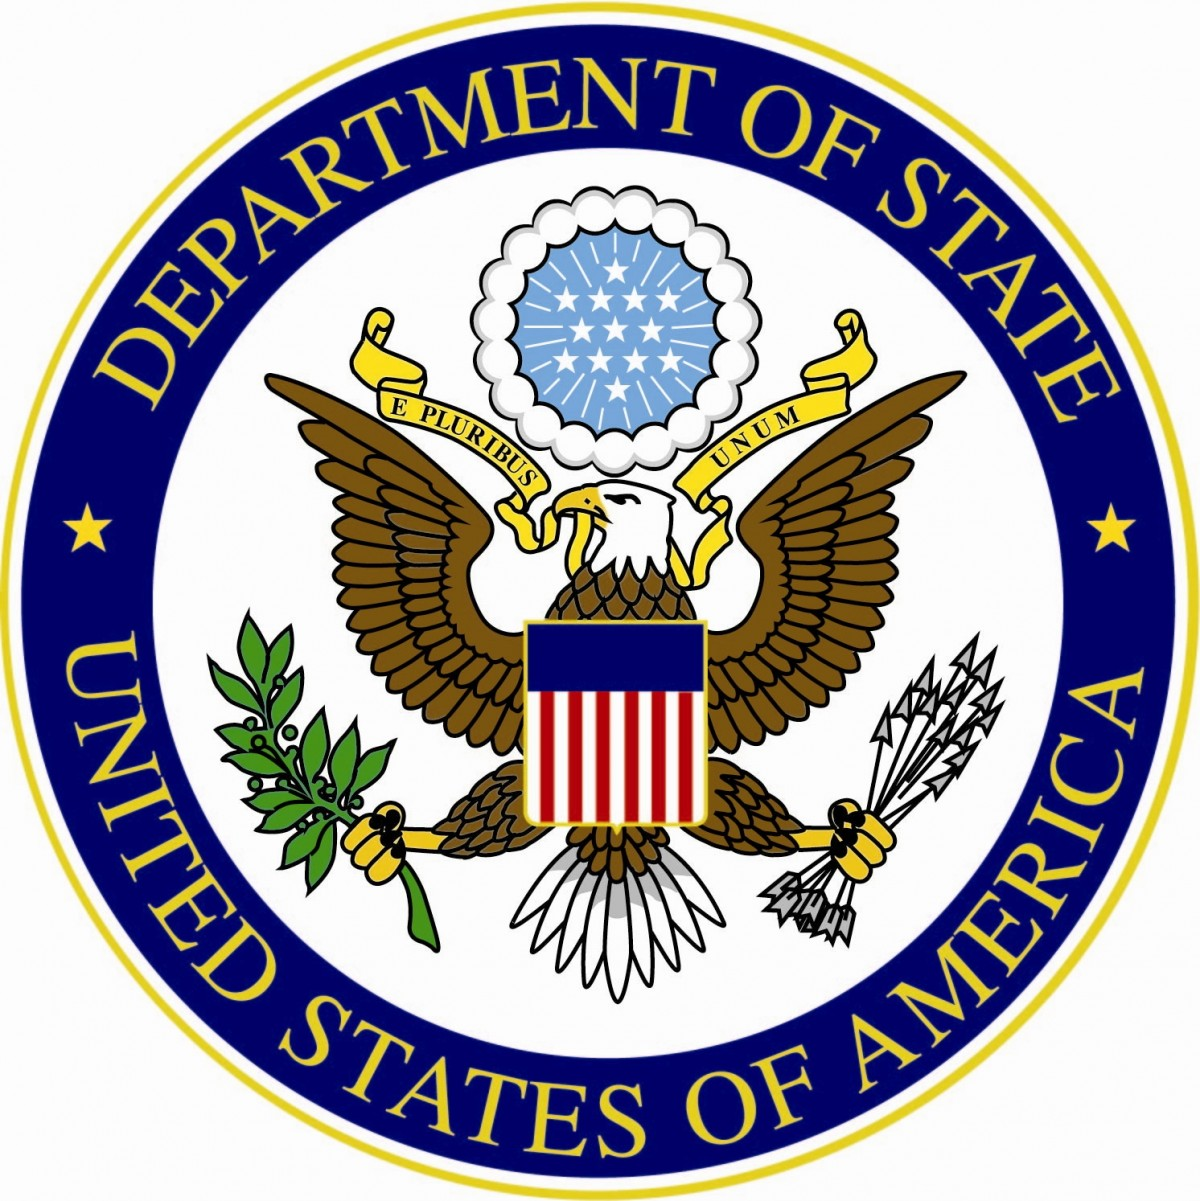 Patricia Rhee to Serve as Peer Reviewer for the U.S. Department of State